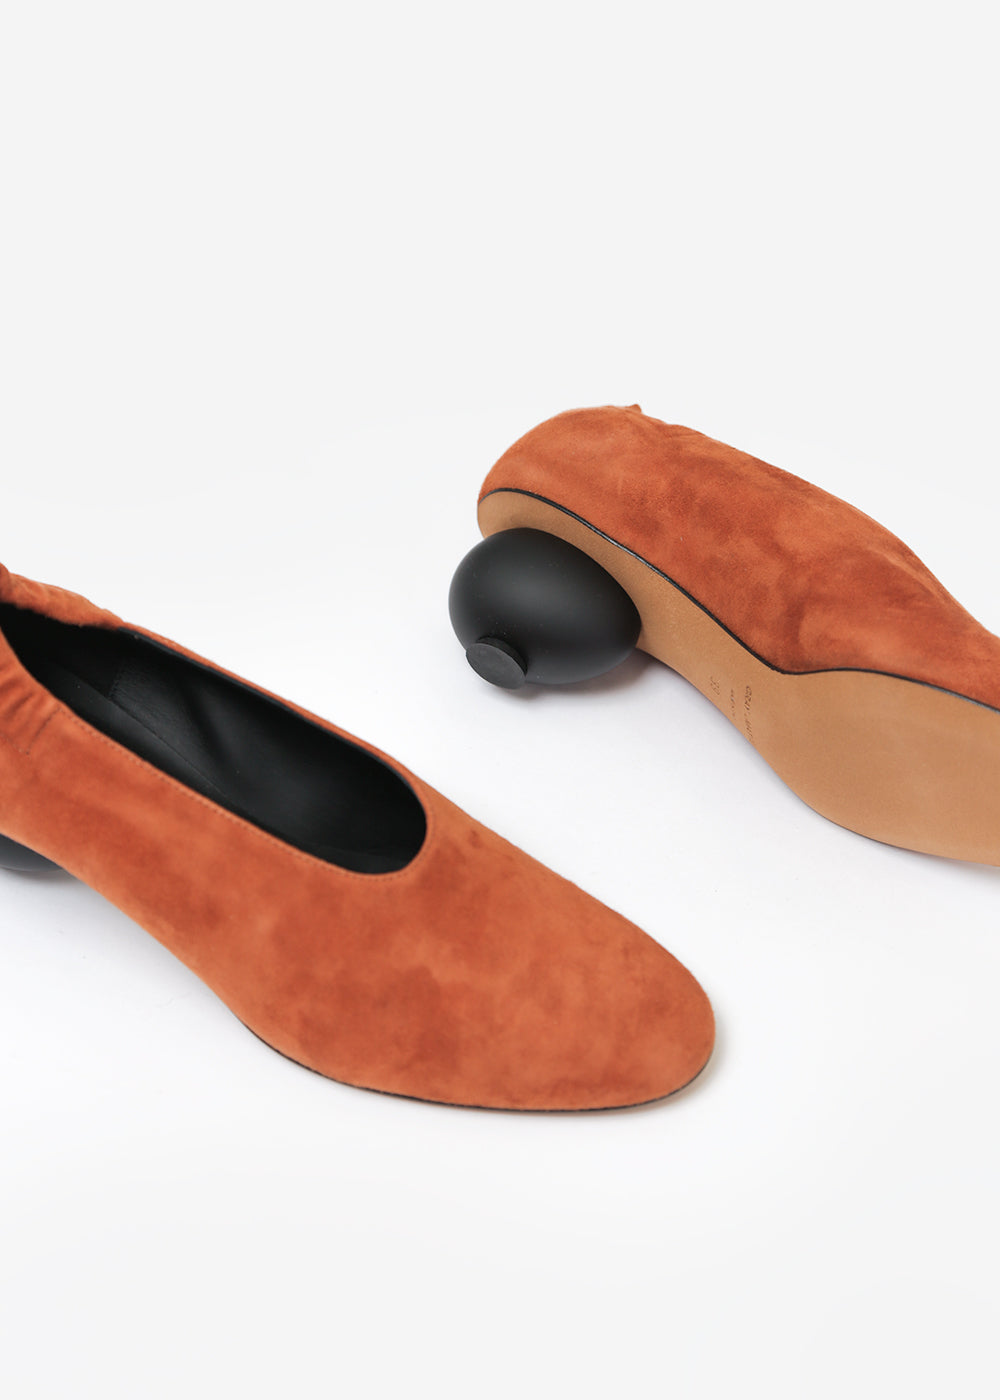 Gray Matters Mildred Egg Pump Castaono Suede — New Classics Studios